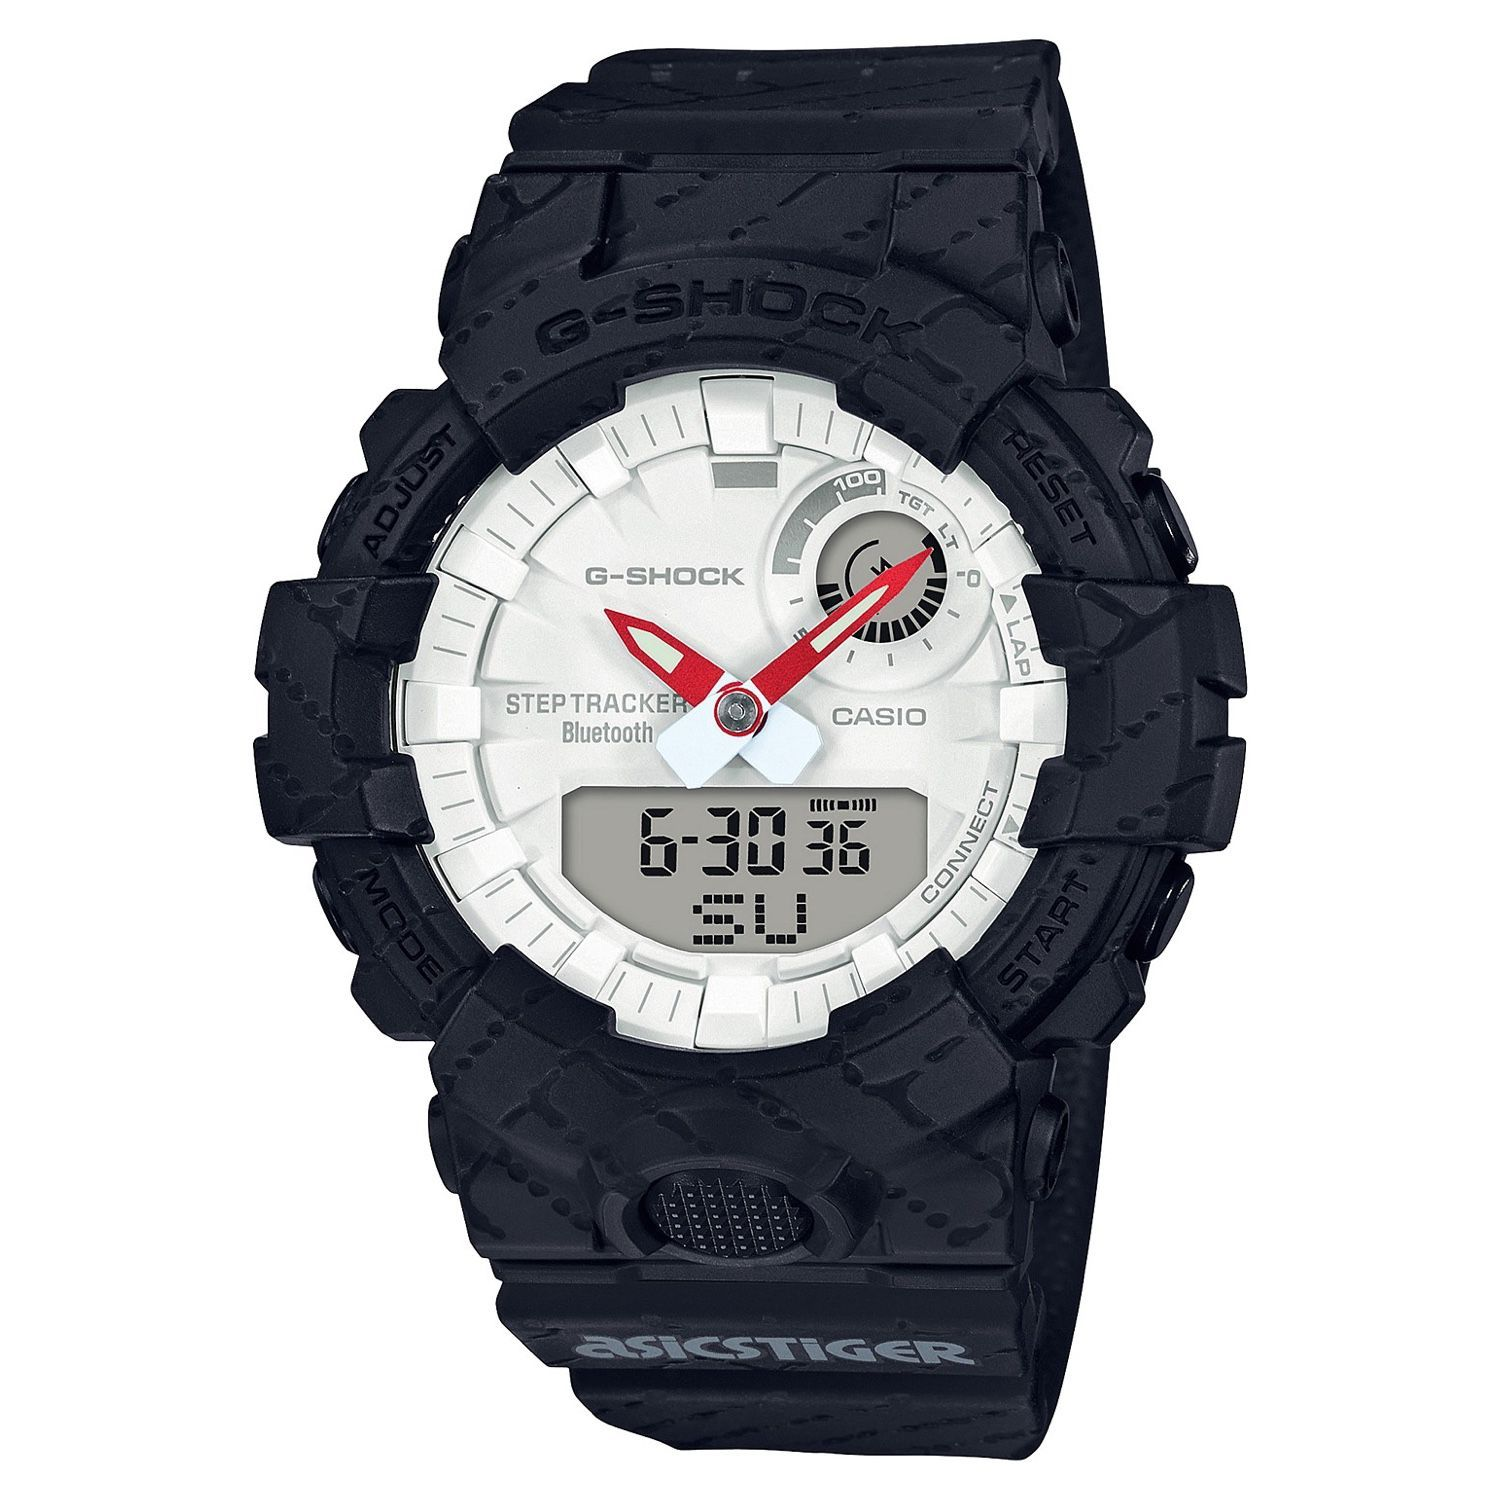 95a050113ab 11 Best G-Shock Watches to Buy in 2019 - Cool Casio G-Shock Watches